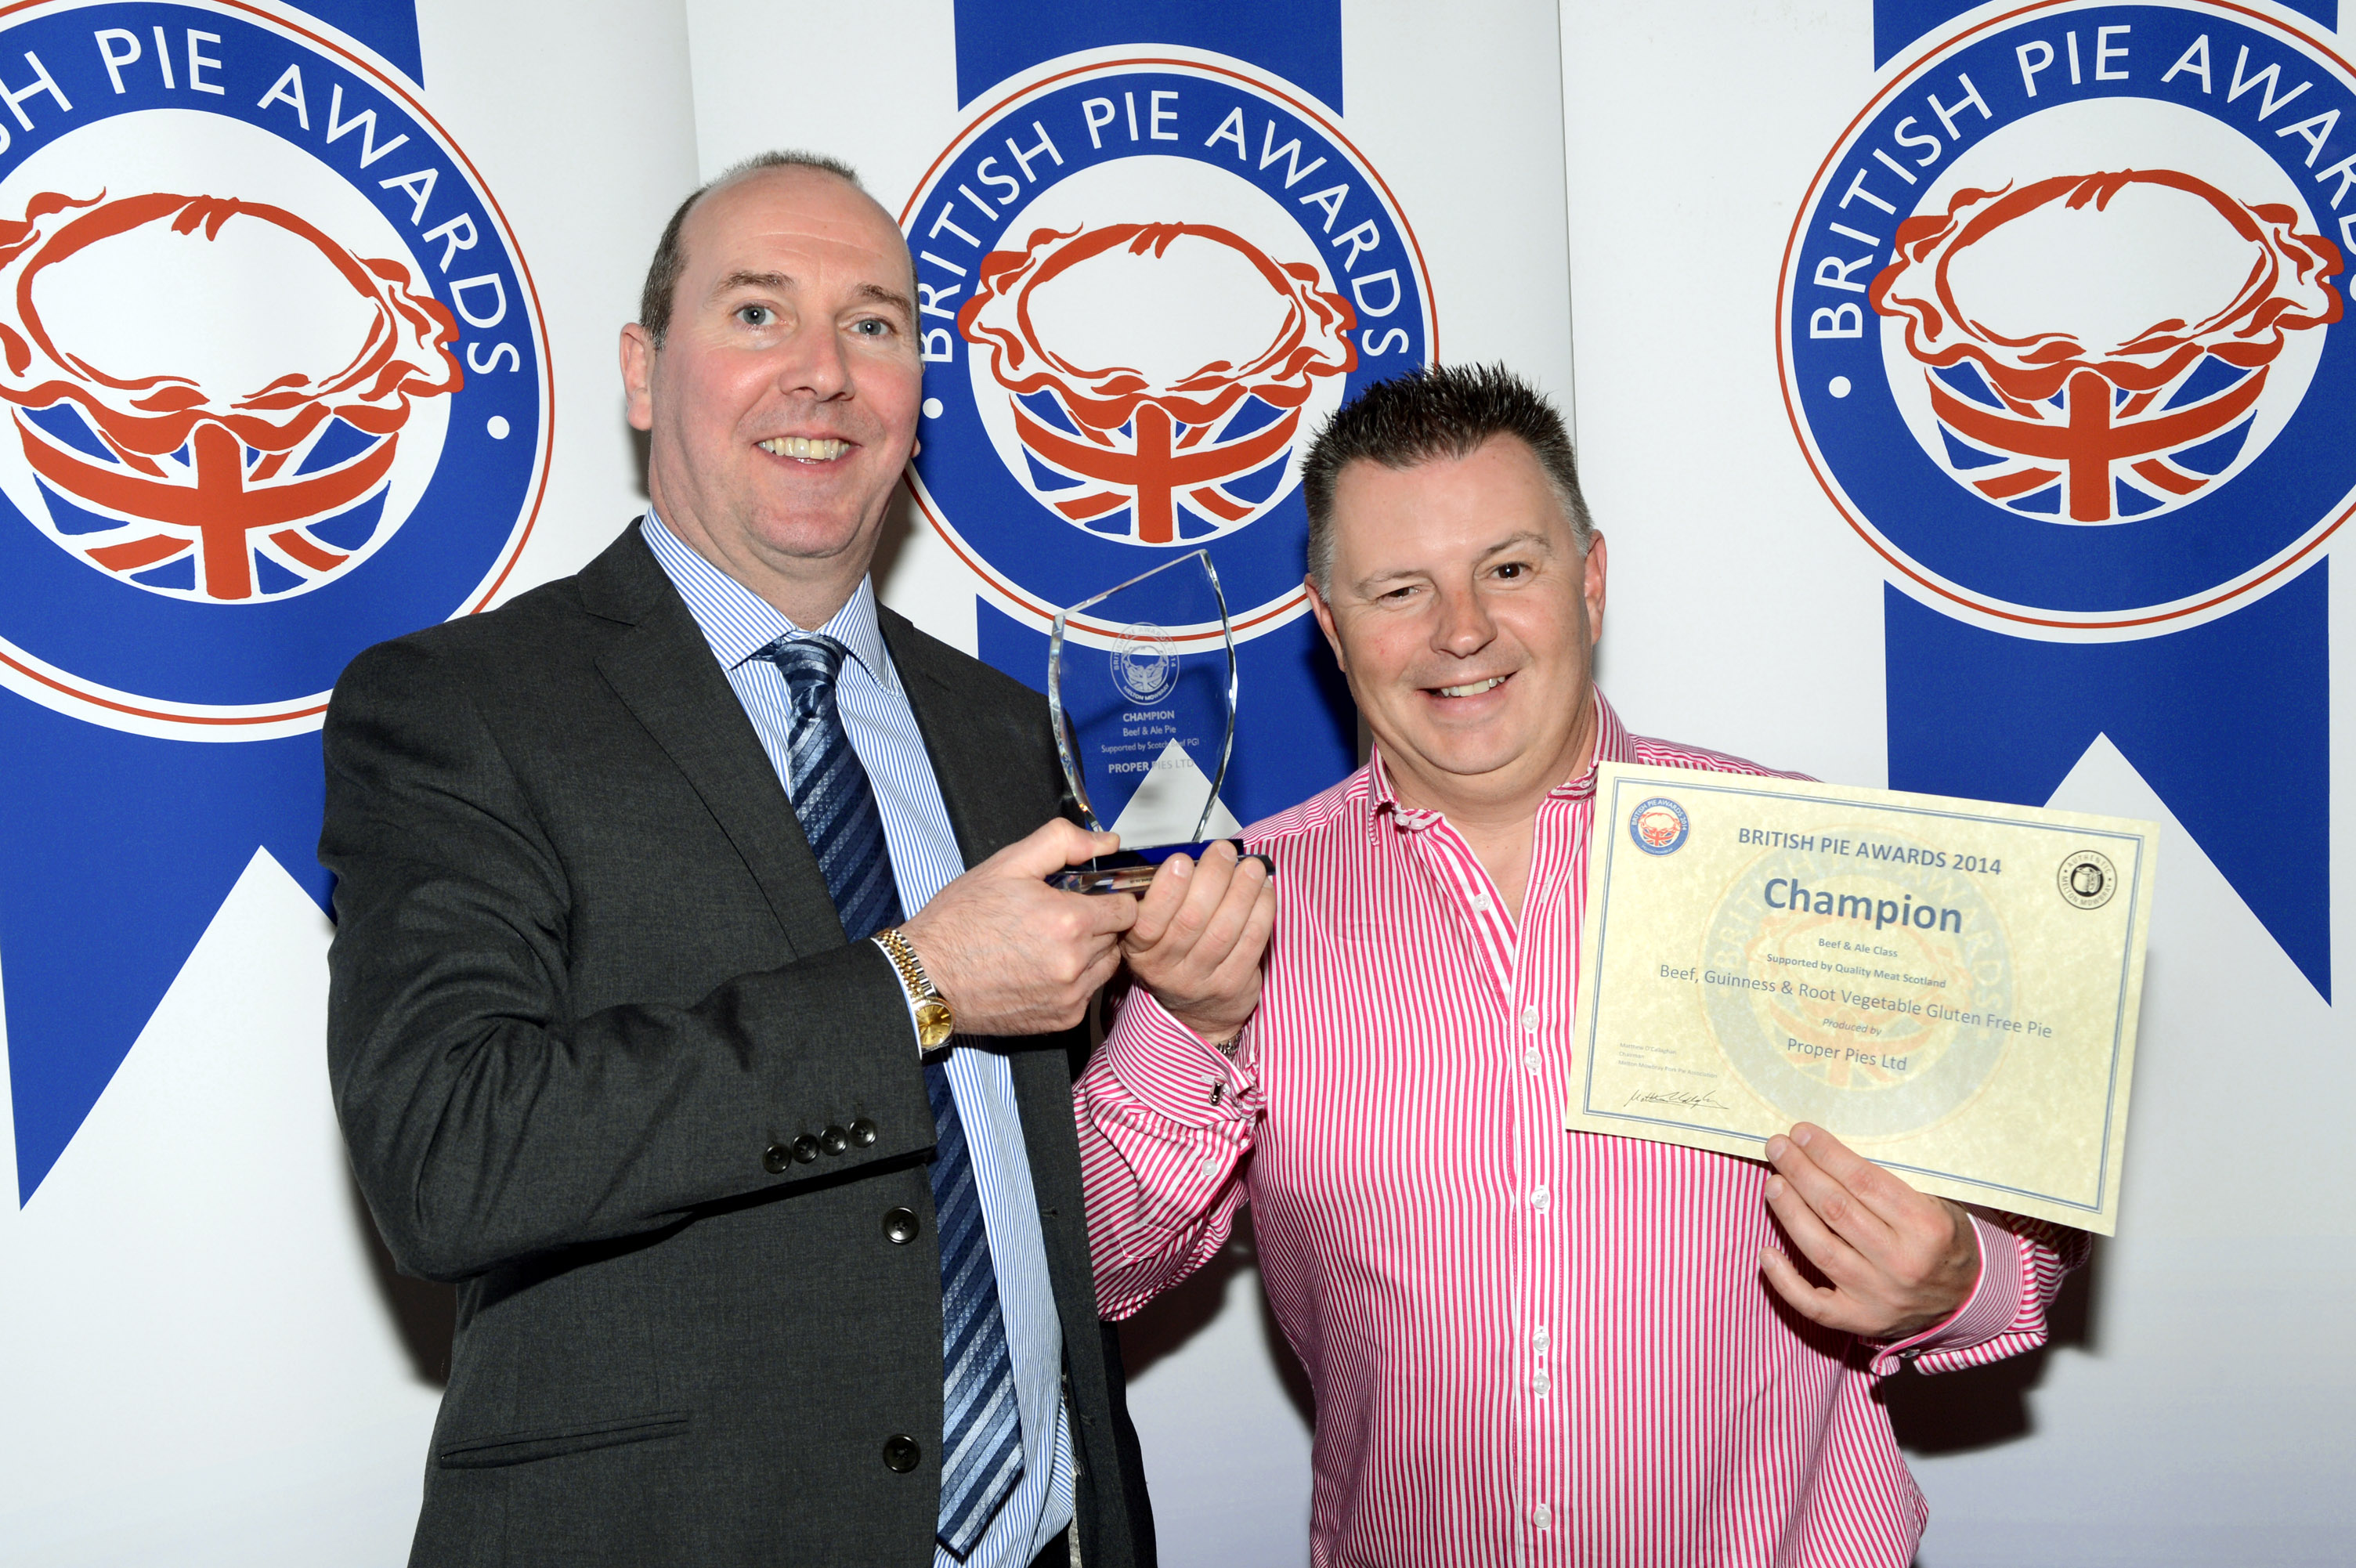 Britiths Pie Awards 2014